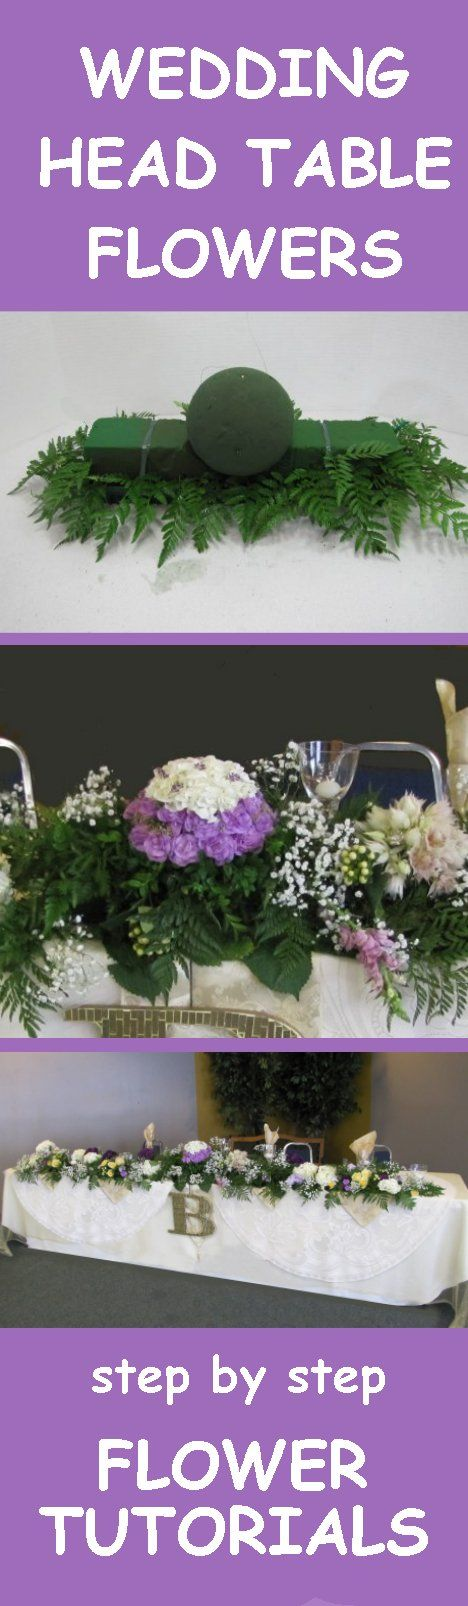 Floral foam florist supply for weddings hanging garland learn floral foam florist supply for weddings hanging garland learn how to make bridal bouquets wedding corsages grooms boutonnieres church and r junglespirit Images